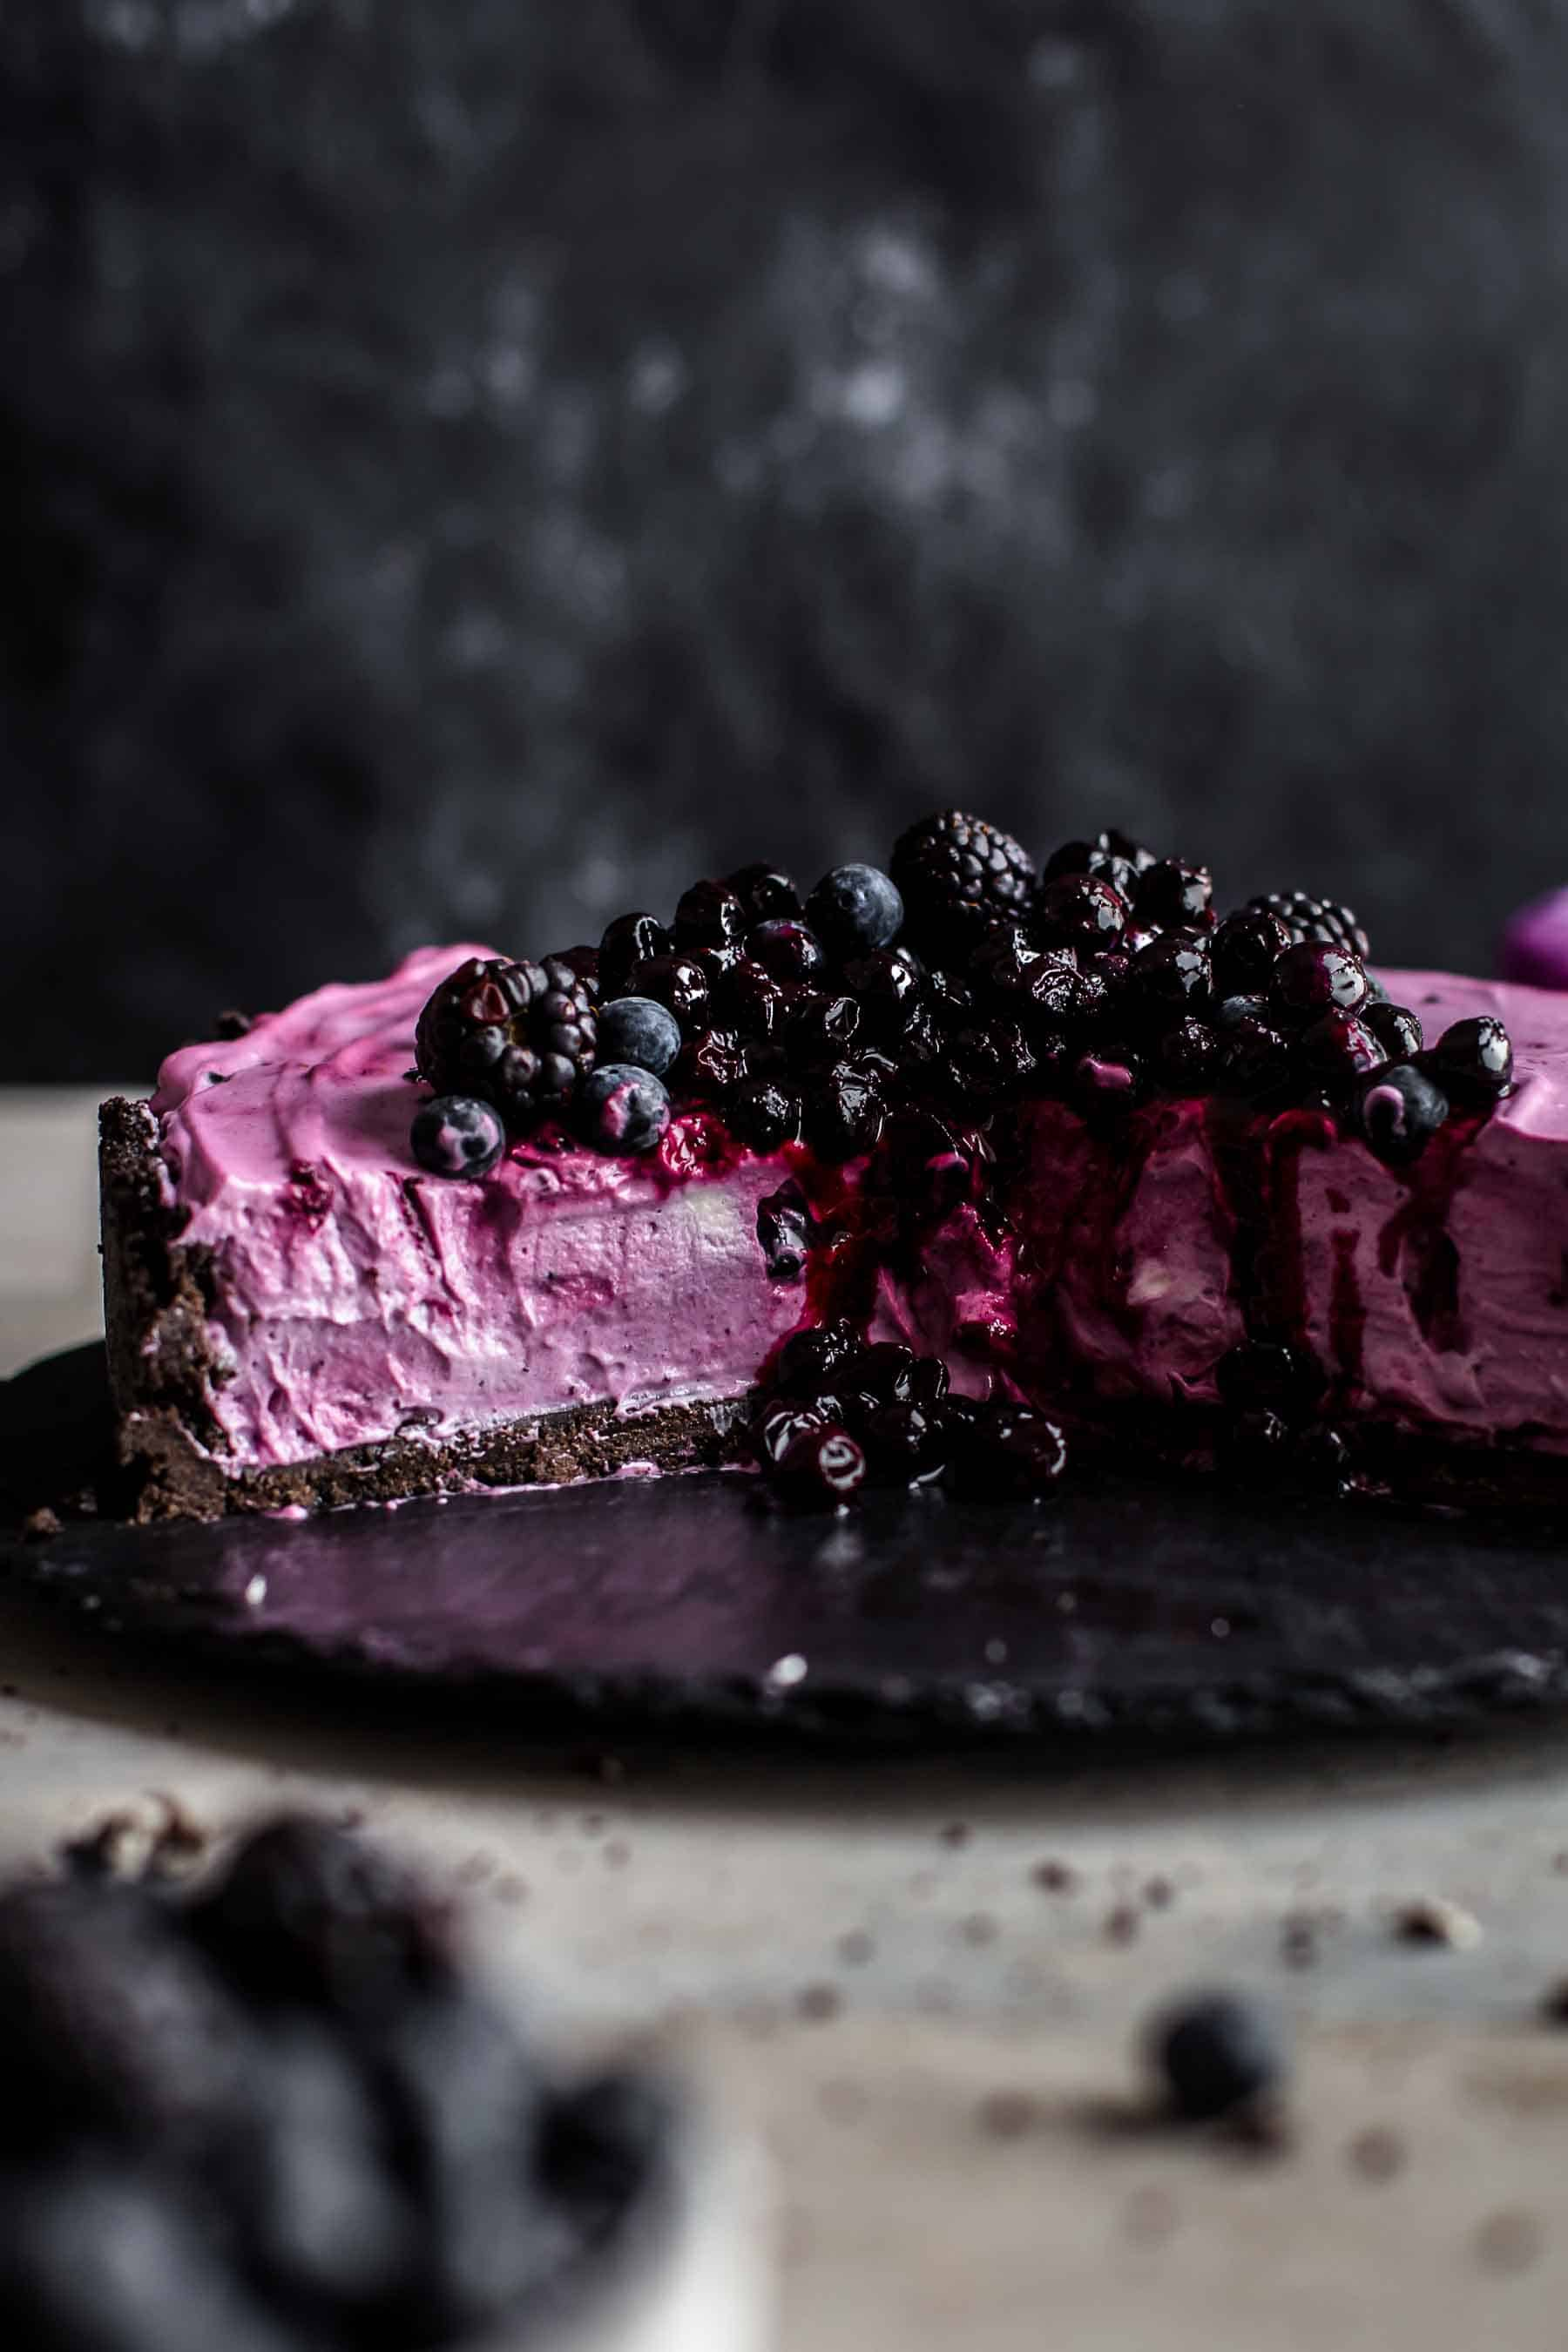 Cut No-bake Blueberry Cheesecake on serving plate